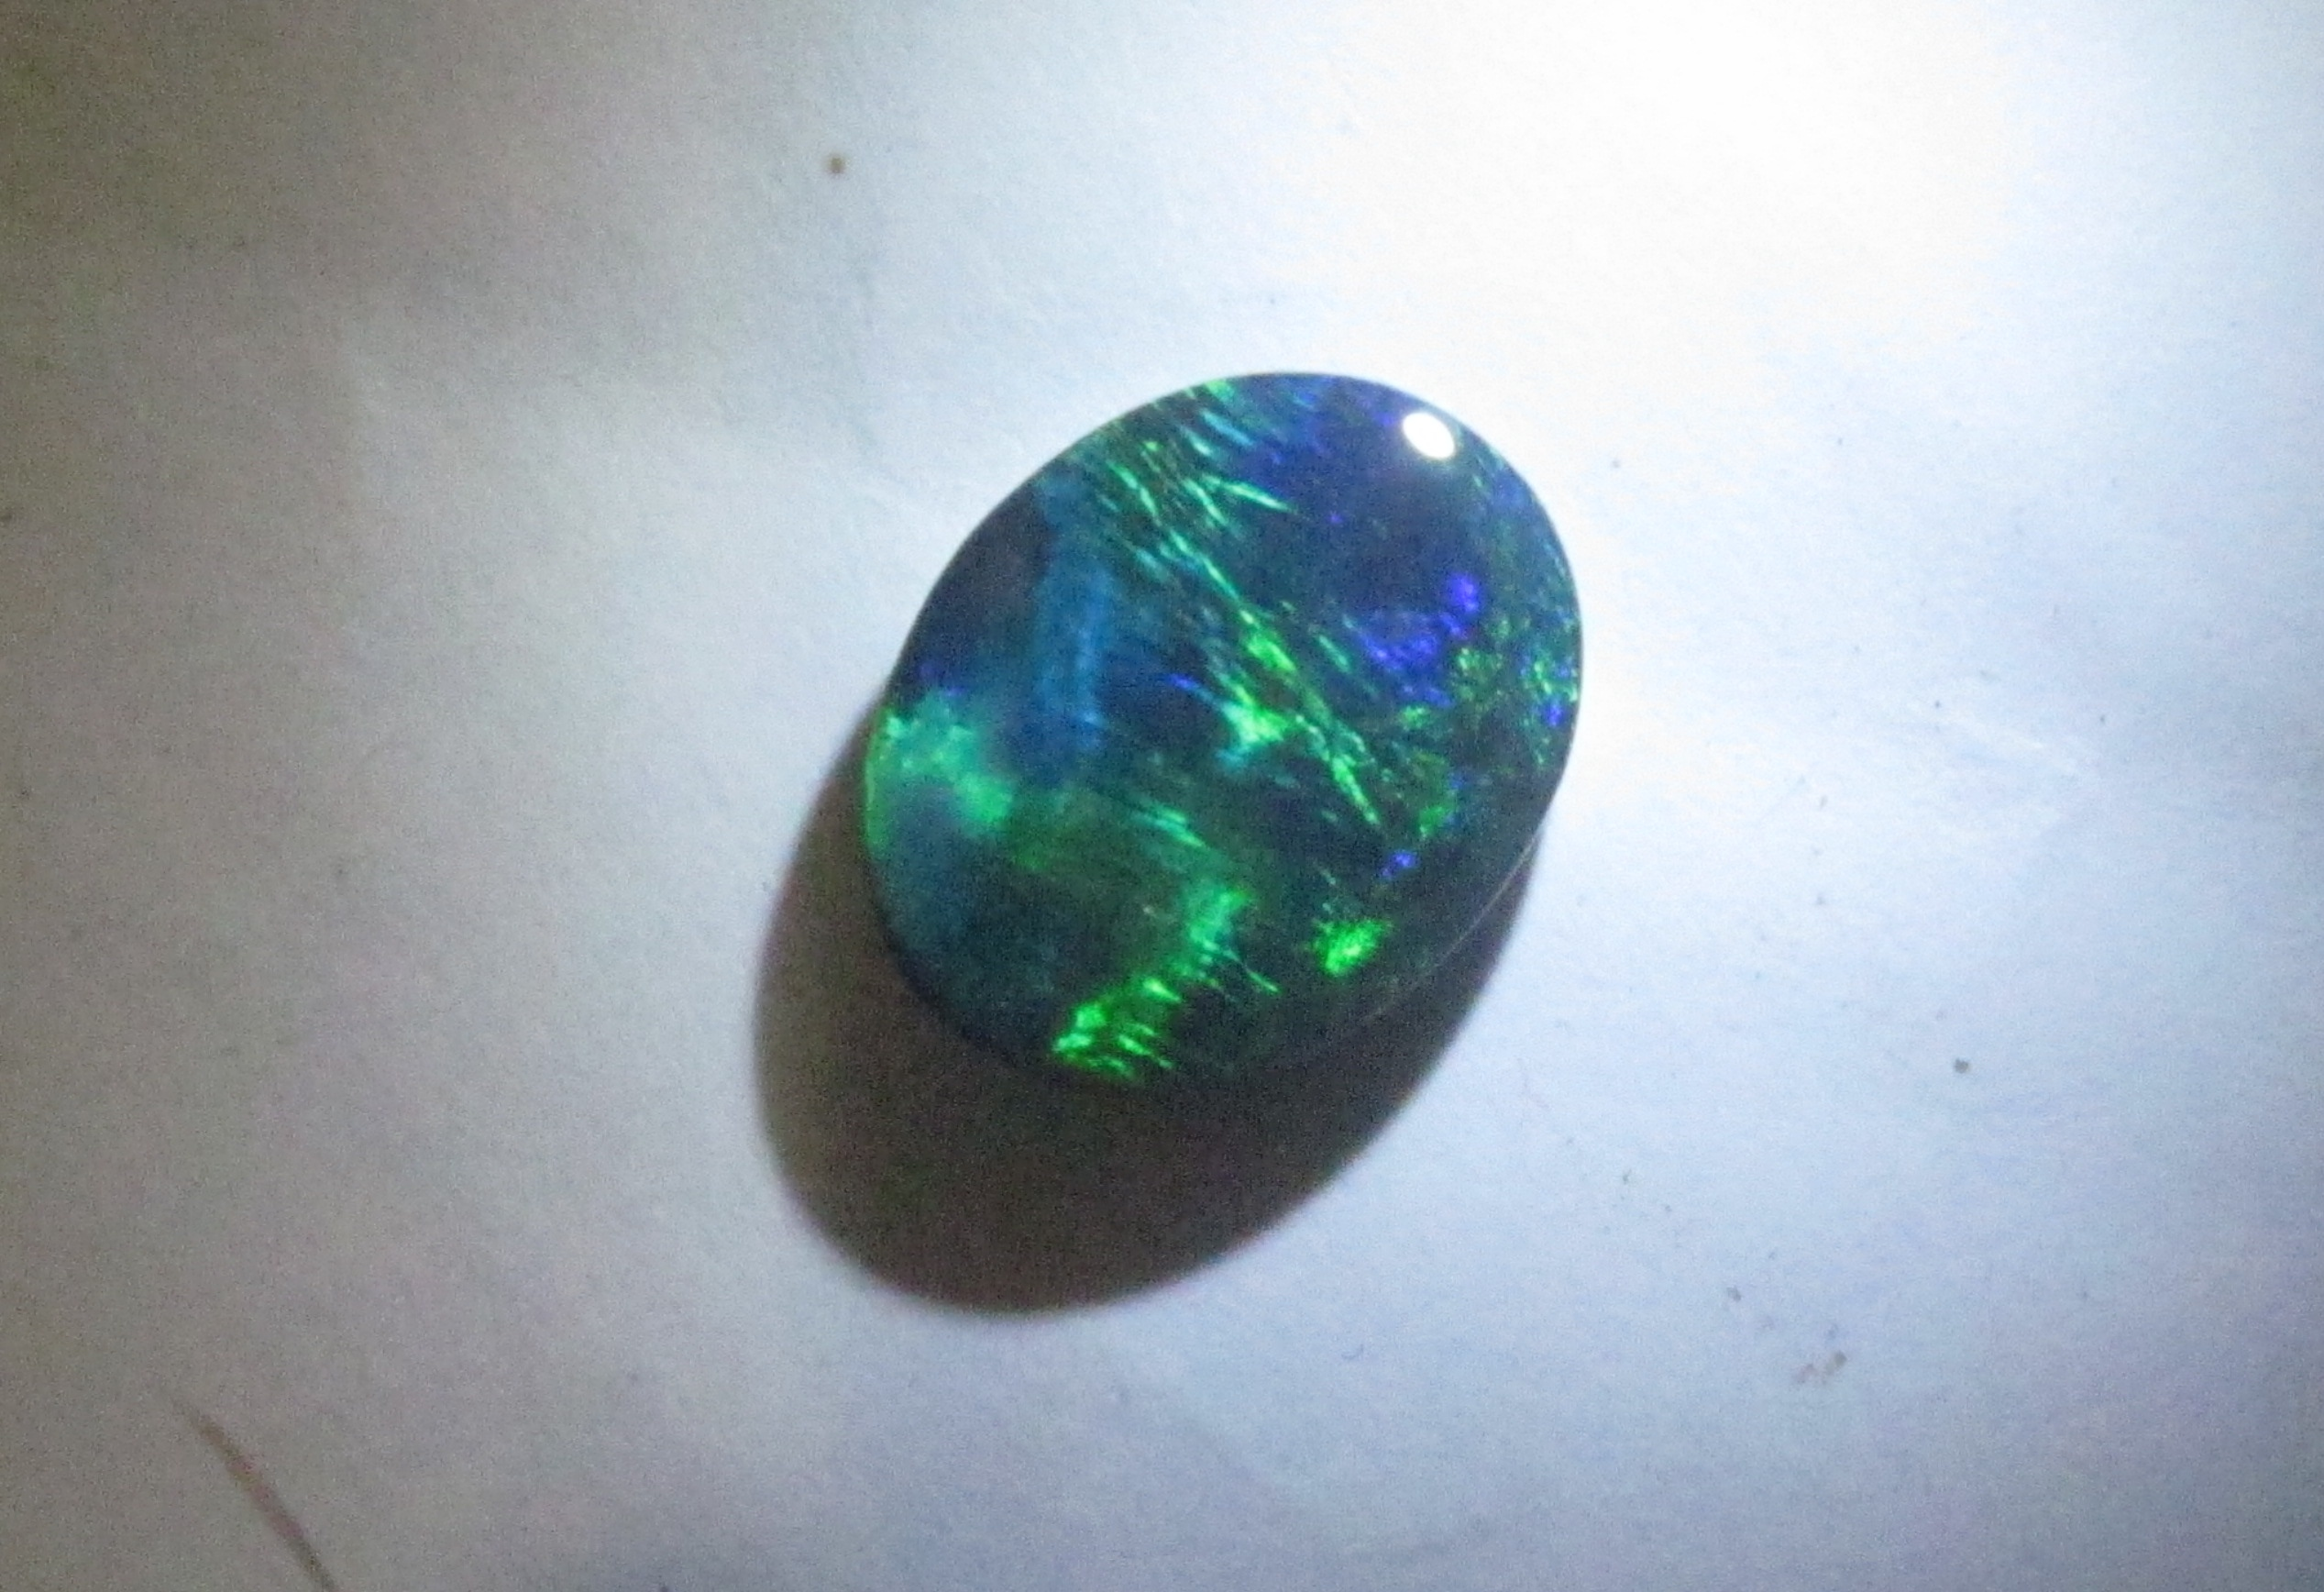 opals for sale,opals for sale,black opals for sale, australian opals for sale